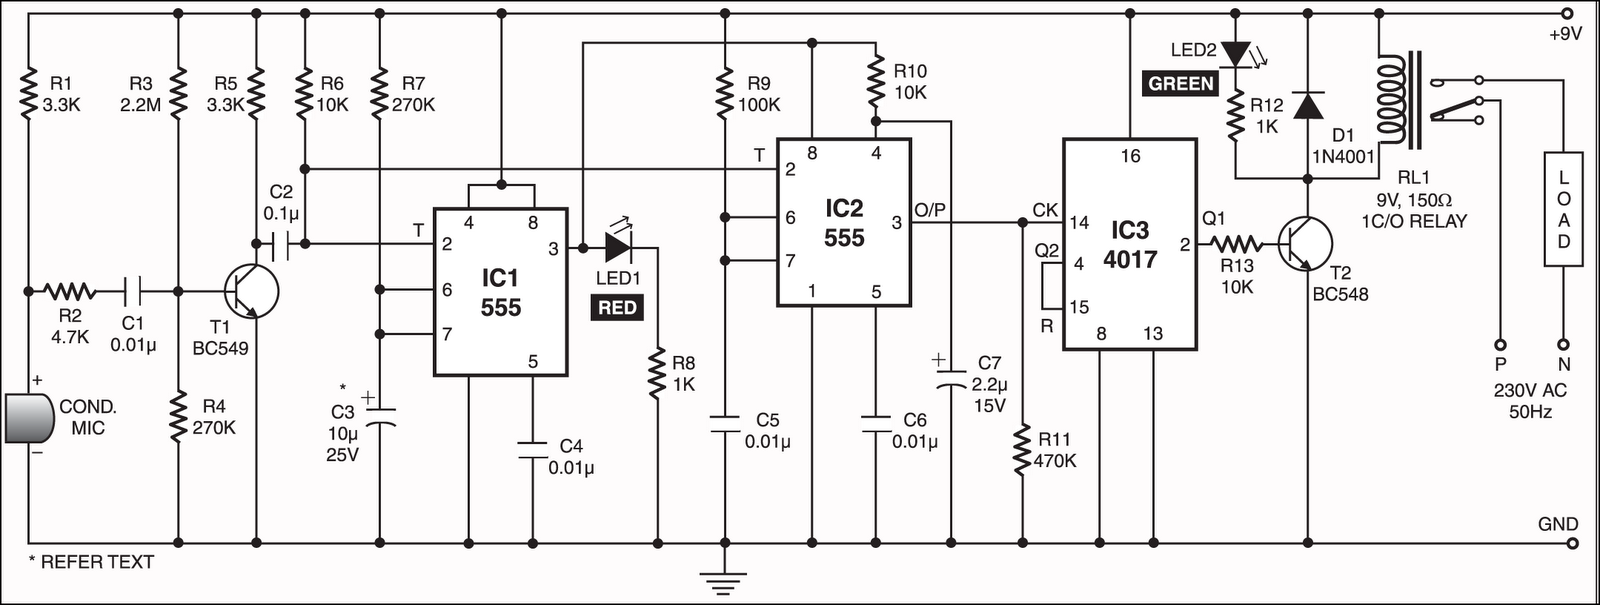 clap swtich Clap switch using lm358 & cd4013 this regulator board delivers 3amp current and adjustable voltage range 123v to 37v, with input voltage 40 vthe board built around lm2576-adj from texas instruments.